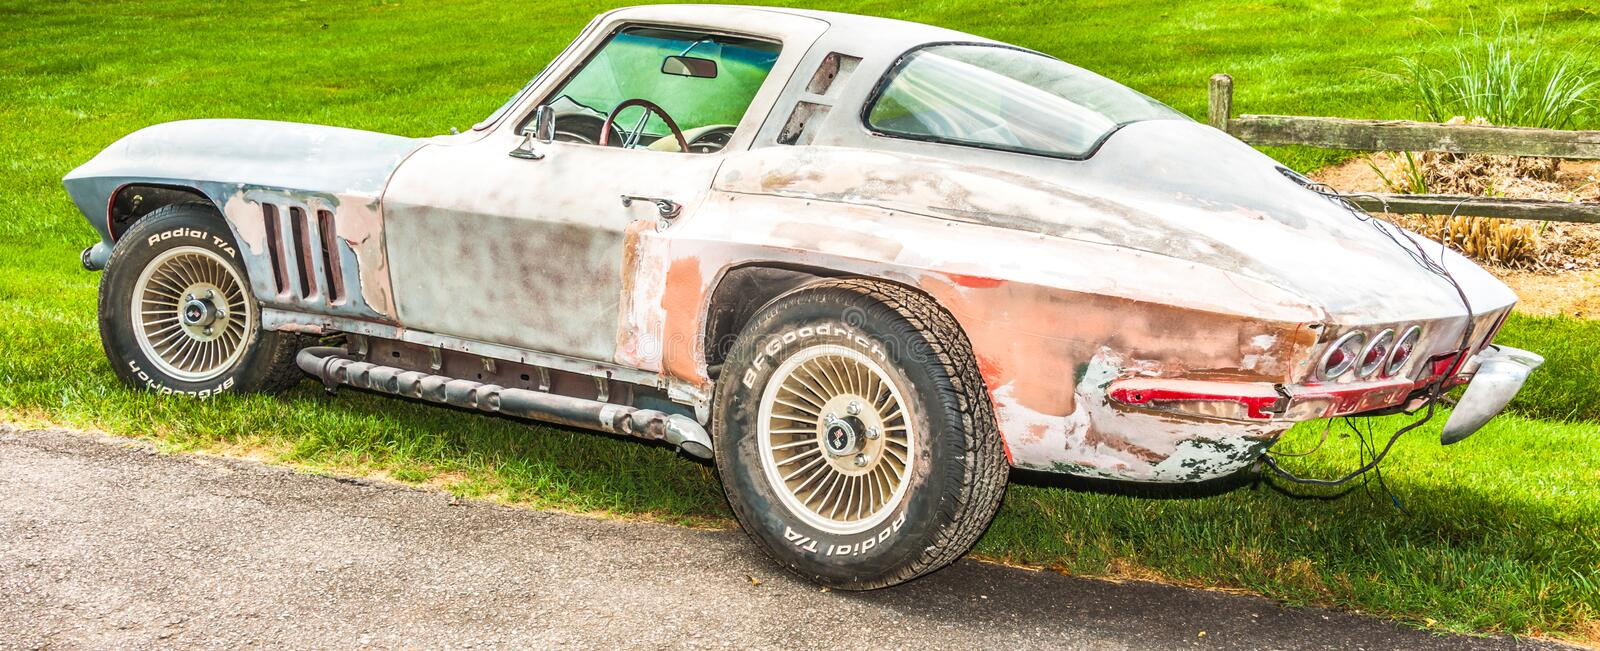 Fixer upper. Corvette needing a lot of body work. That will turn into a master head turner stock images